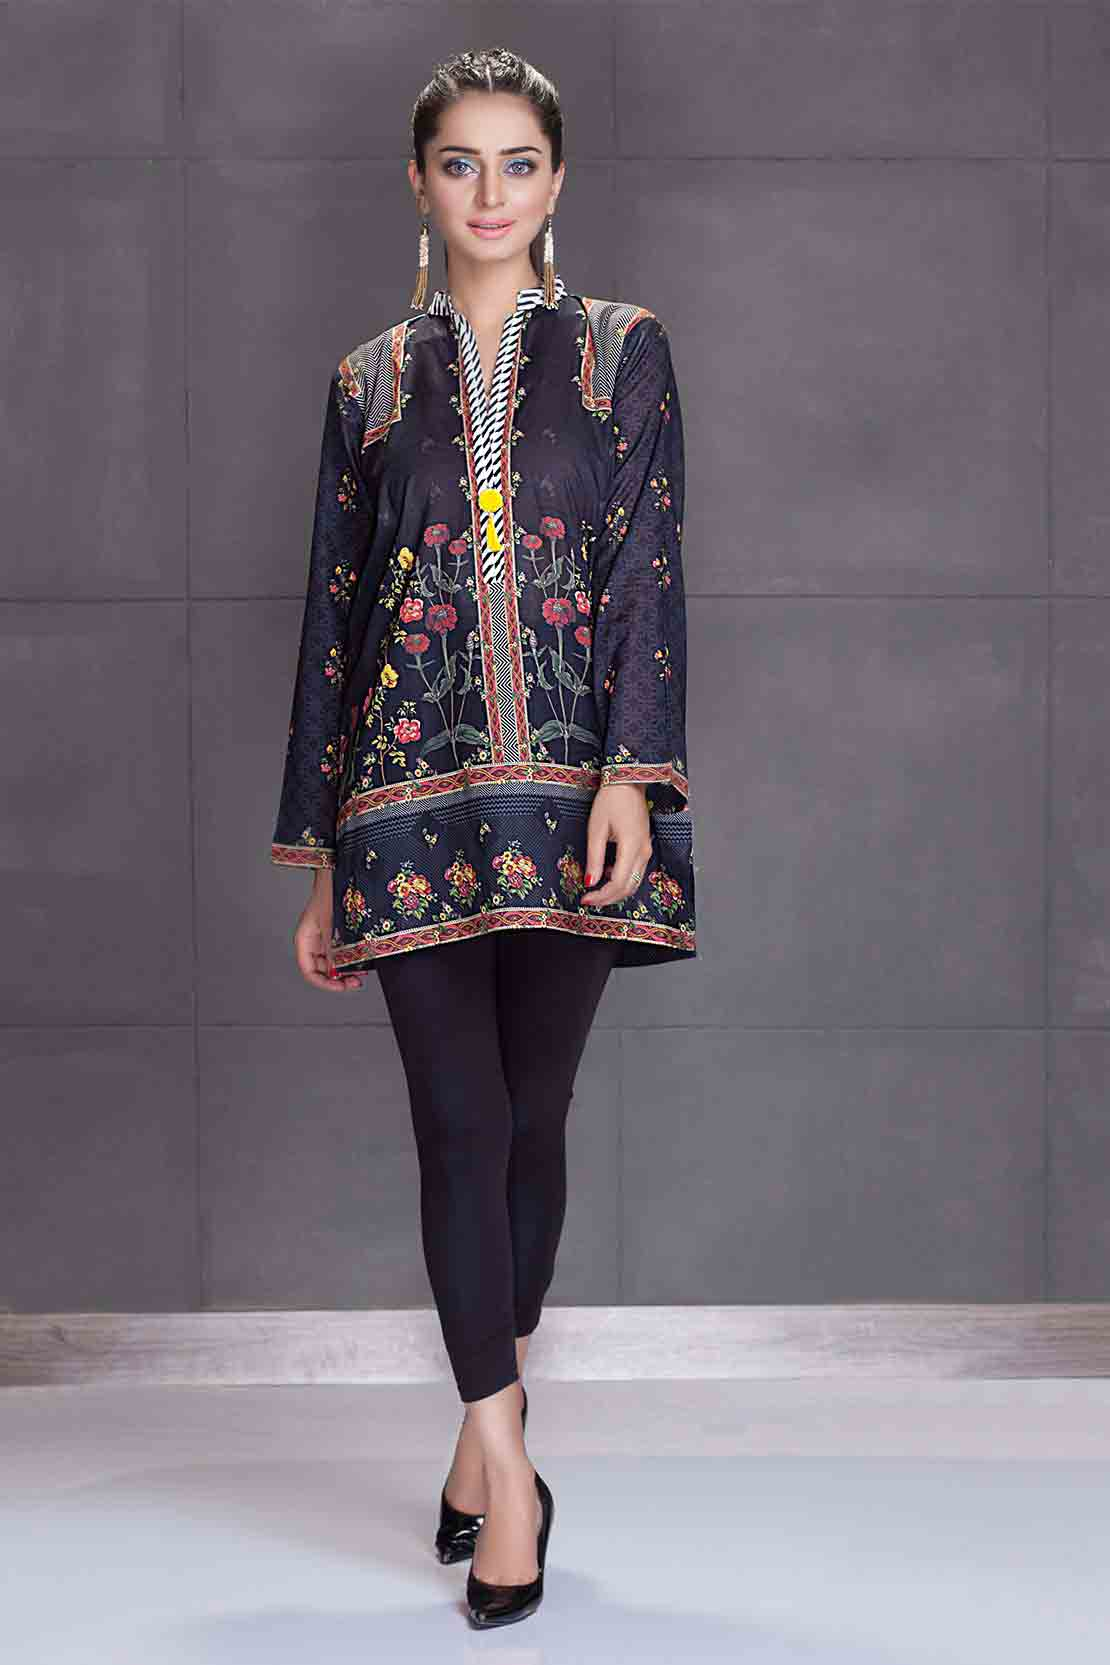 So kamal black kurti new eid dress designs for girls in Pakistan 2017